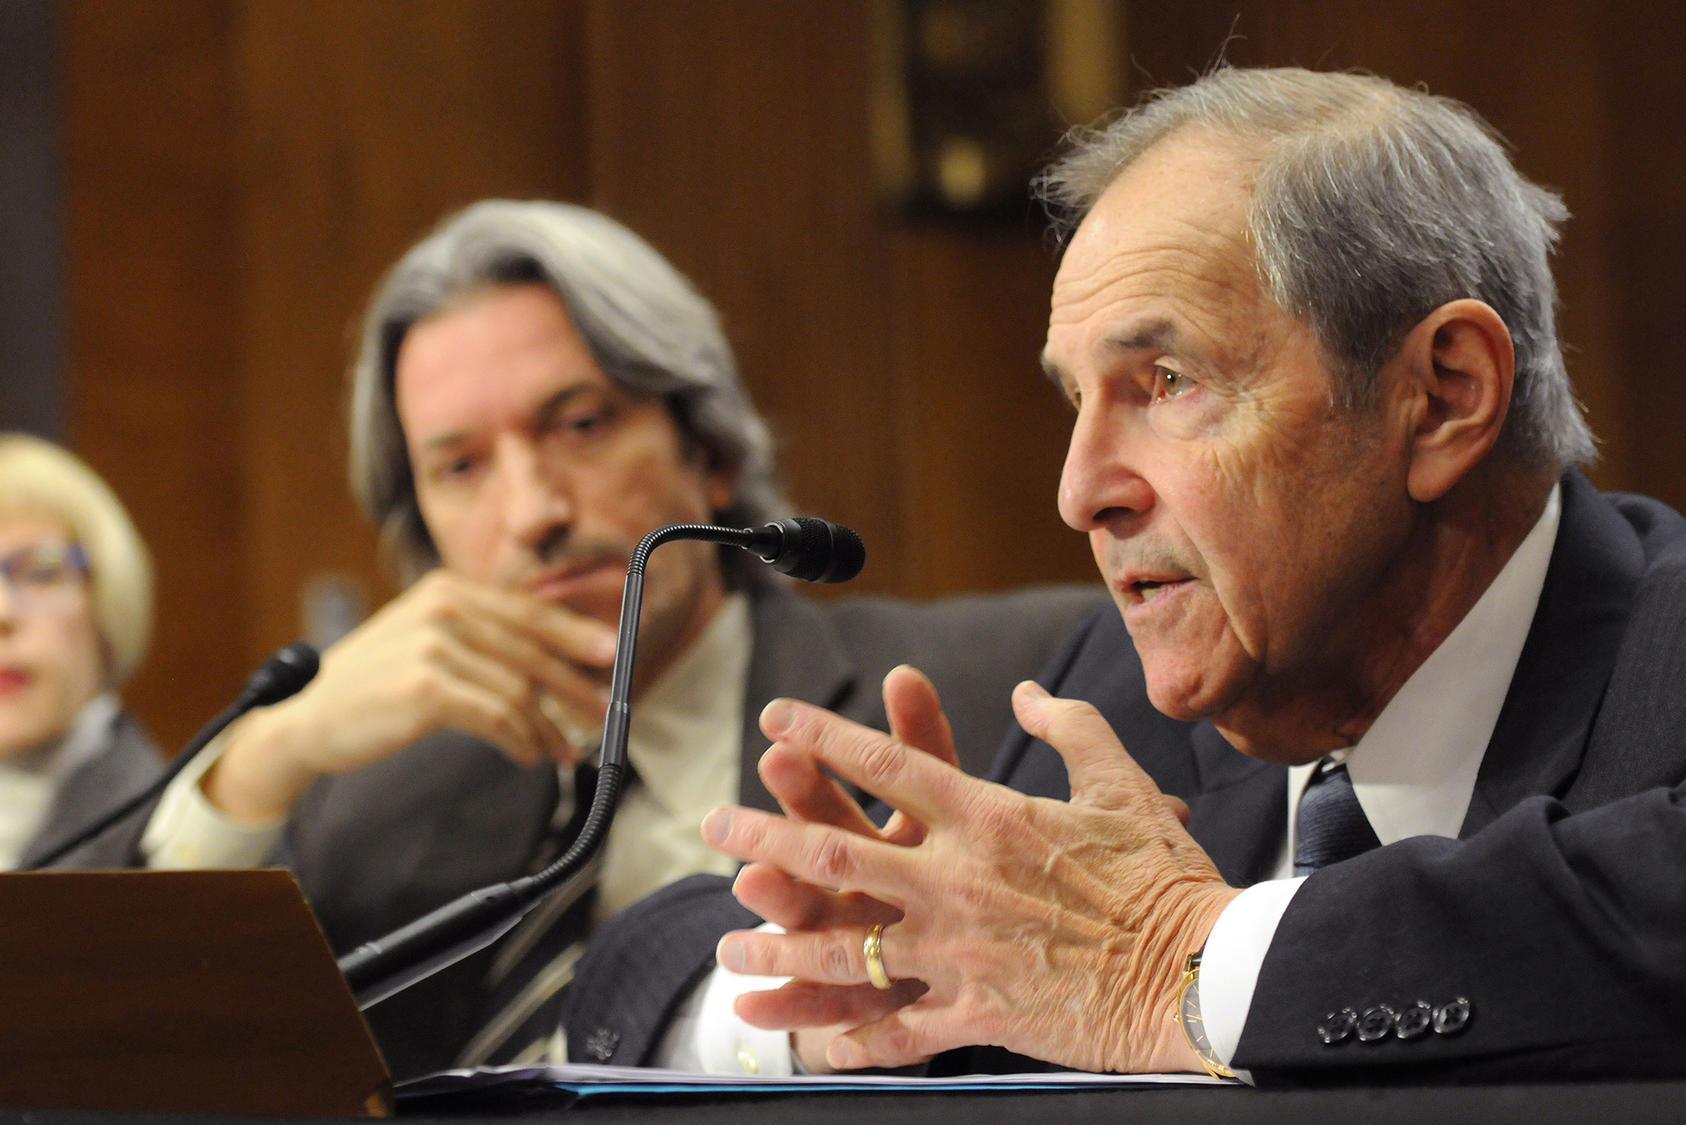 Ambassador Lyman testifies before the Senate Foreign Relations Committee on the political context of the conflict in South Sudan, January 9, 2014.